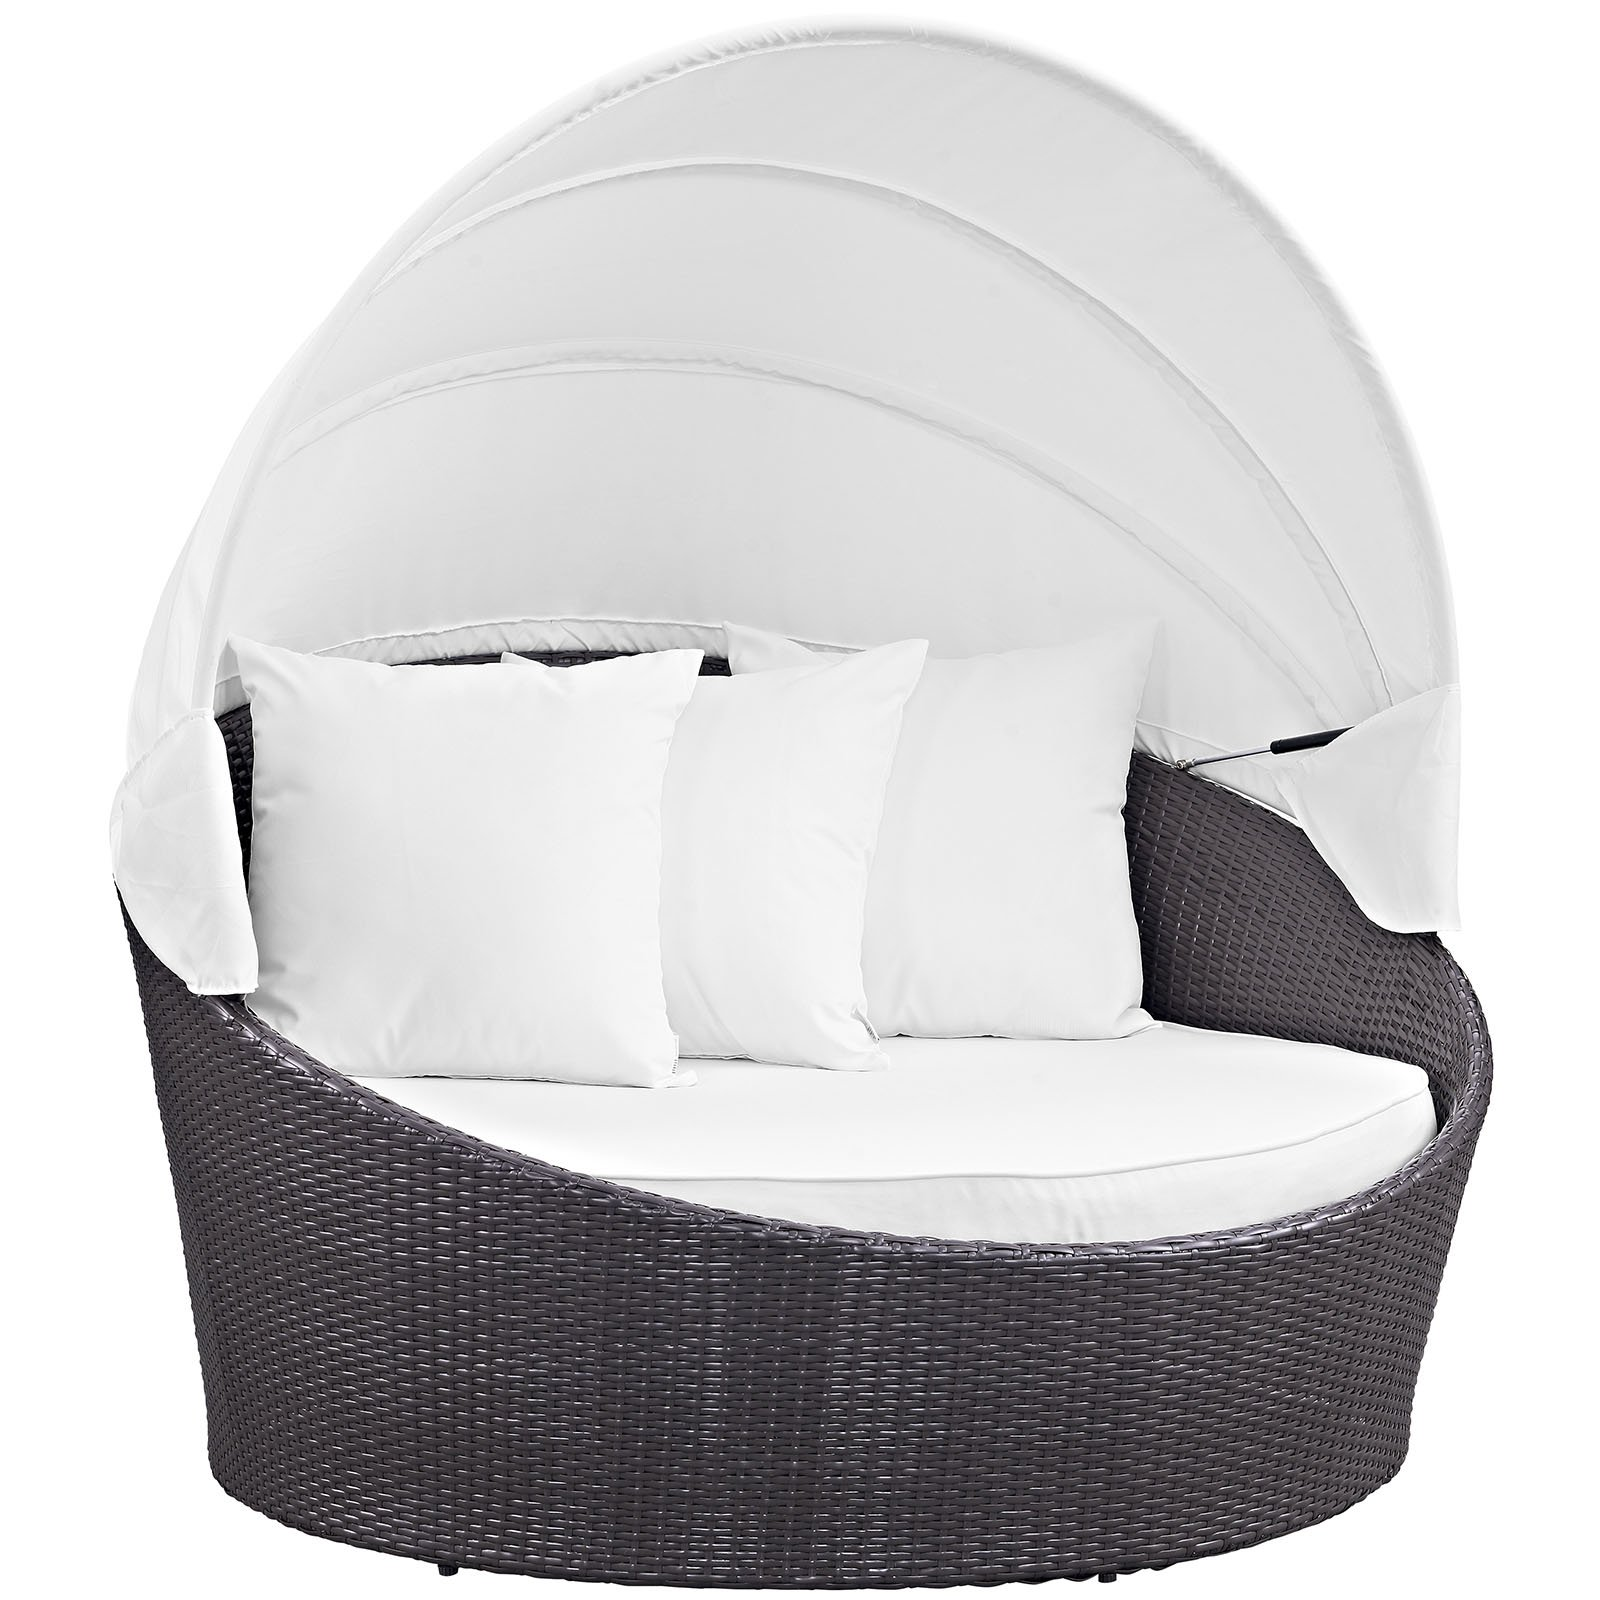 Stupendous Modway Convene Wicker Outdoor Daybed With Canopy White Alphanode Cool Chair Designs And Ideas Alphanodeonline